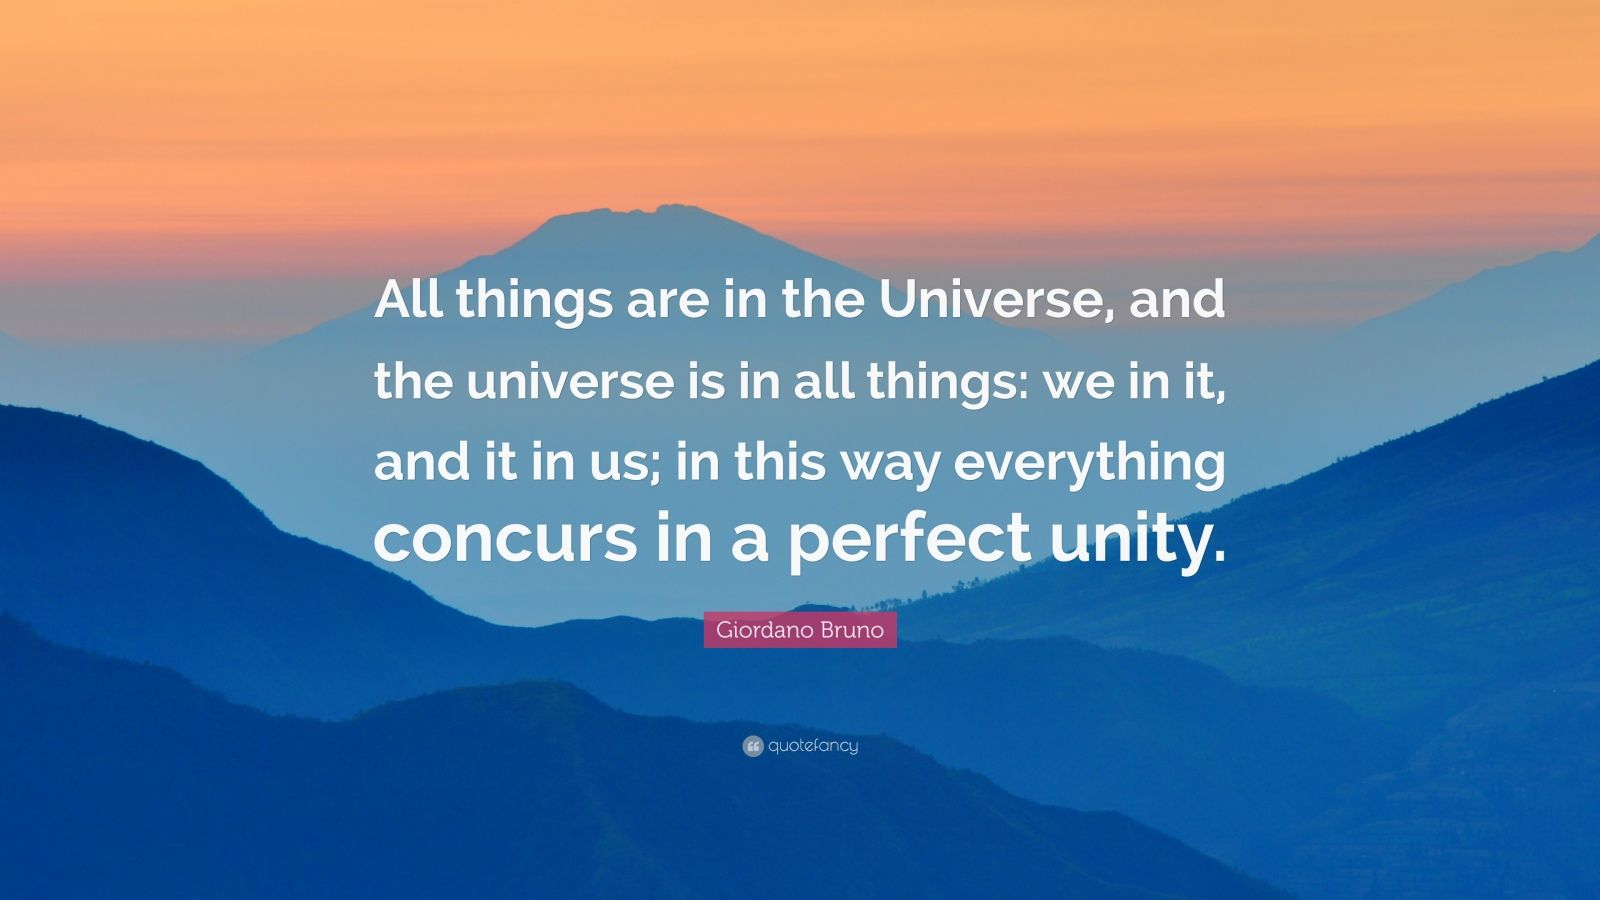 """Giordano Bruno Quote: """"All things are in the Universe, and the universe is in all things: we in it, and it in us; in this way everything concurs in a perfect unity."""""""